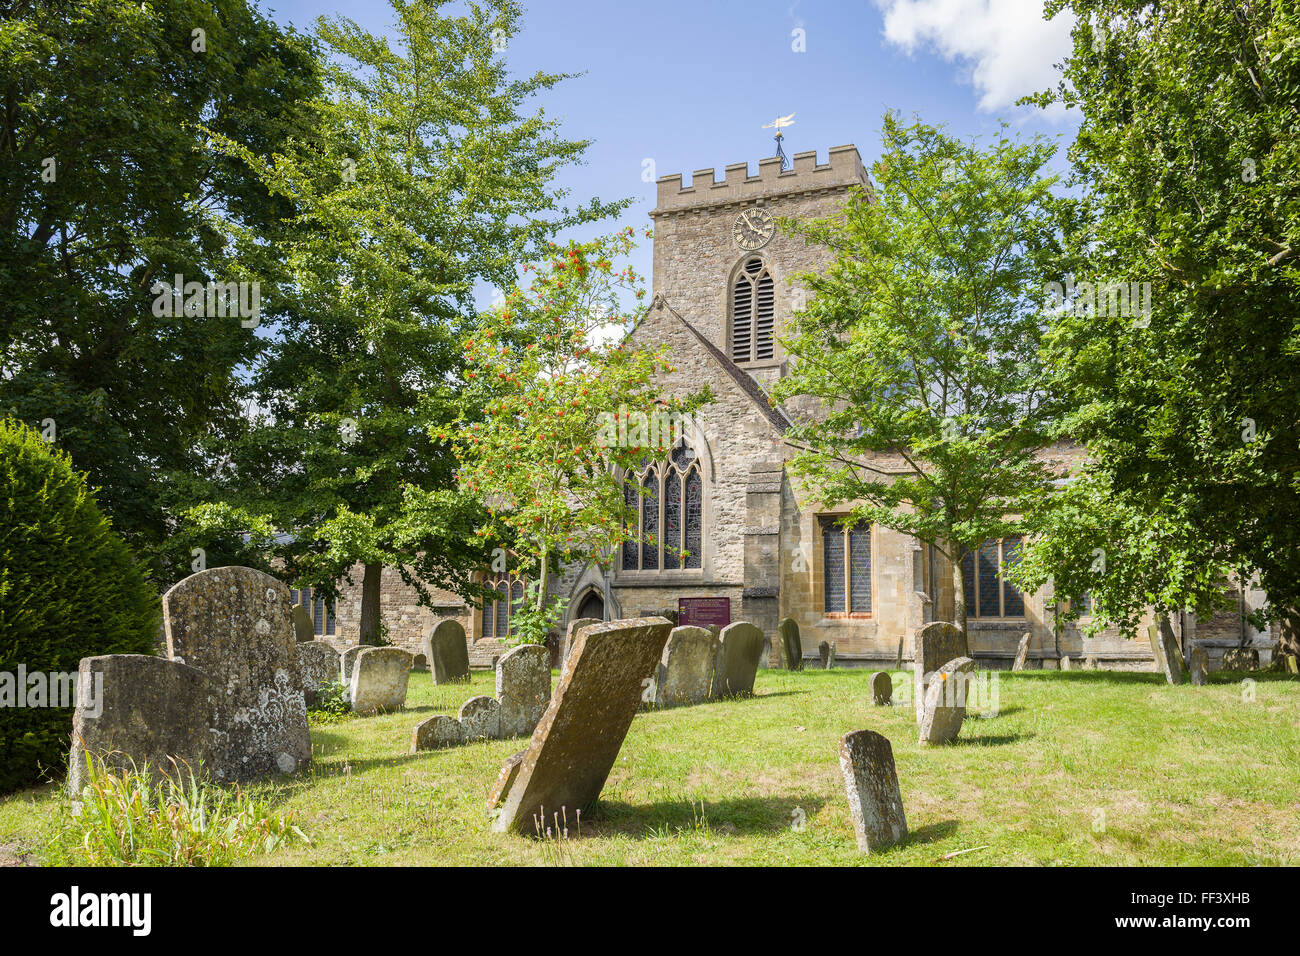 St Peter and St Paul Parish Church, Wantage, Oxfordshire, England, UK. - Stock Image